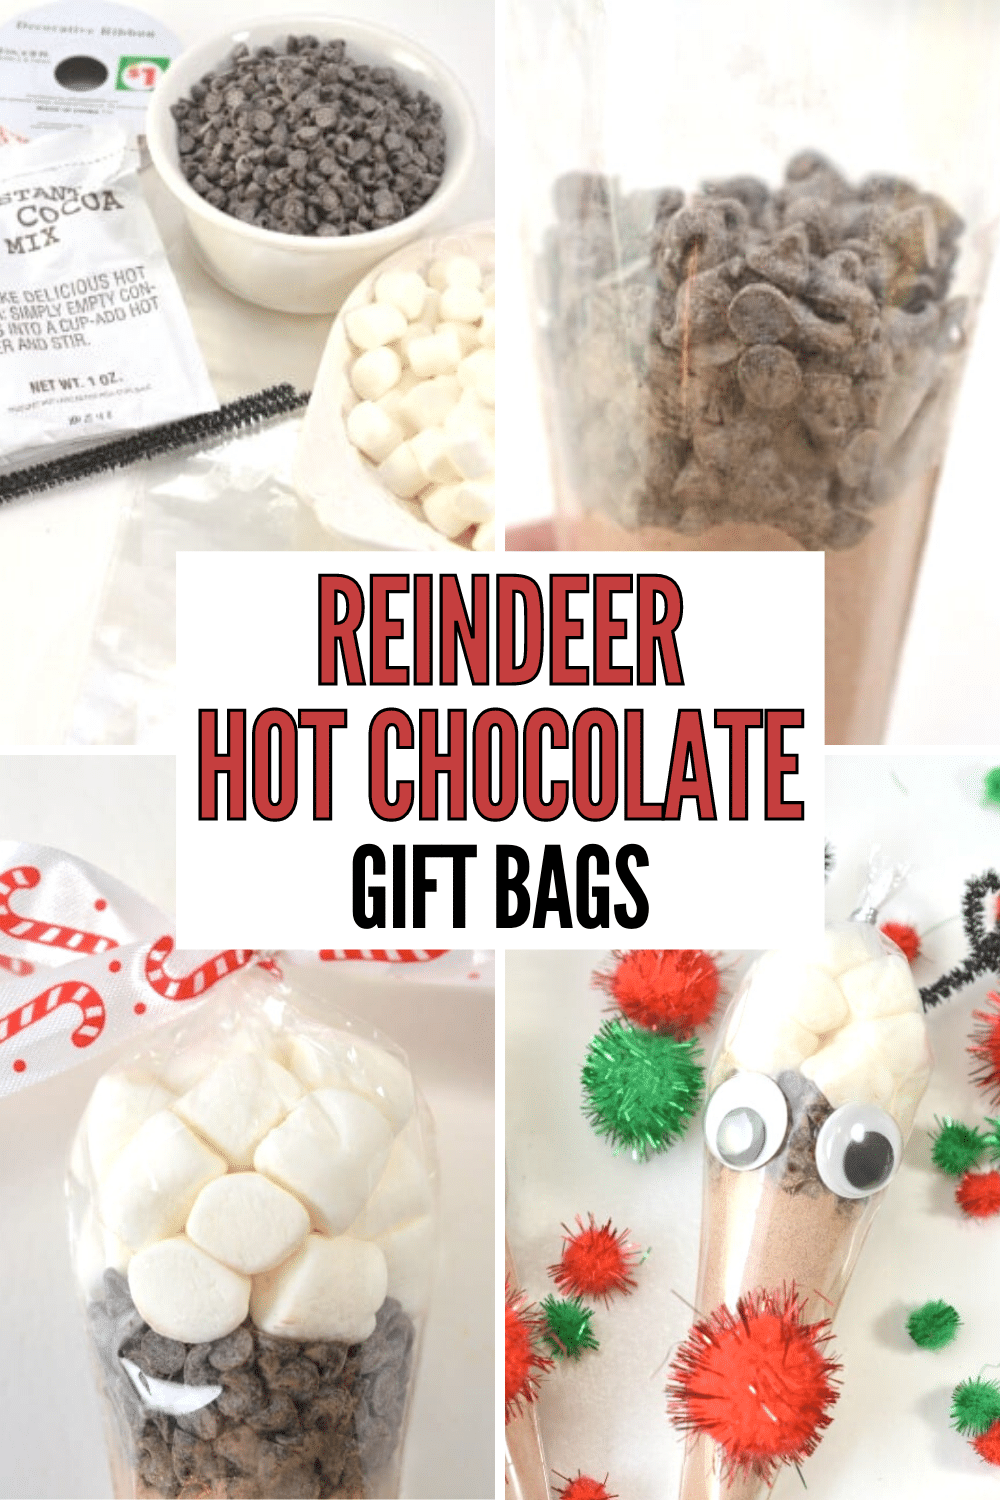 These reindeer hot cocoa treat bags are great (easy) gift ideas for Christmas! They're super cute and so easy to make. #DIYgifts #easygiftideas #reindeer #hotcocoa via @wondermomwannab